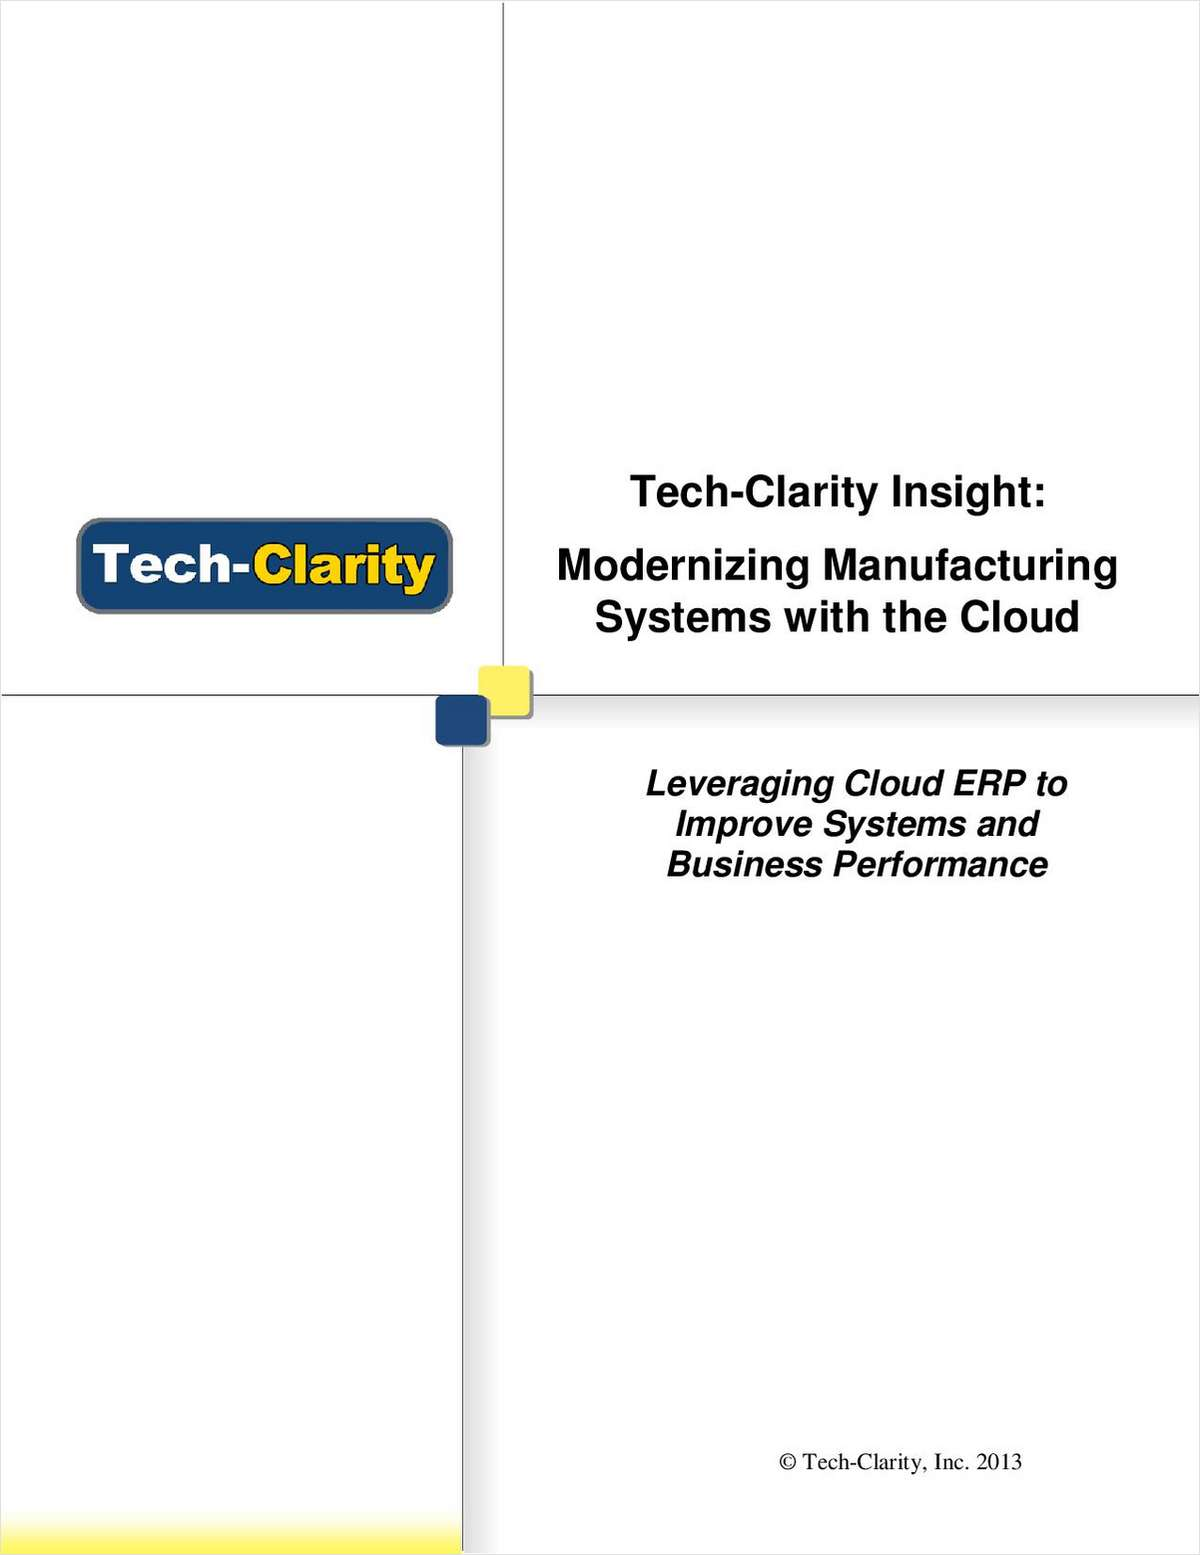 Improve Systems and Business Performance with Cloud ERP